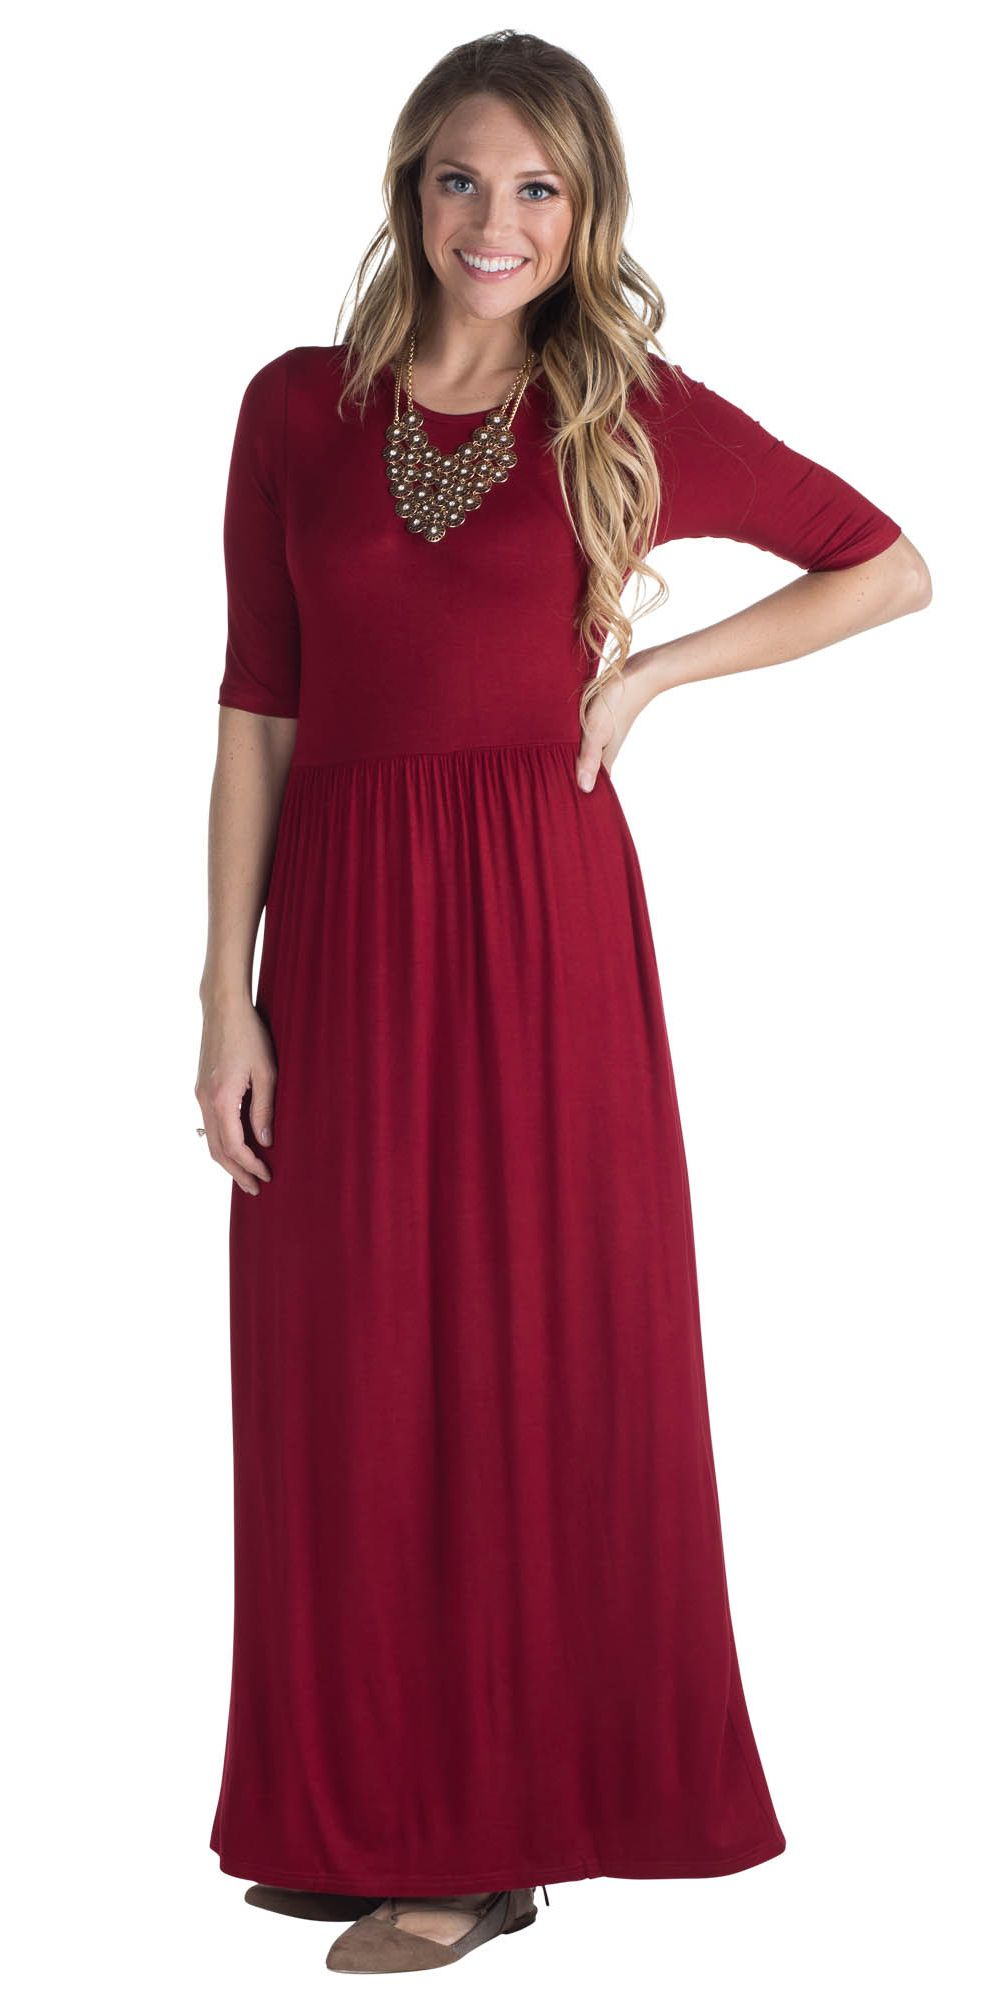 4018528c36 Every girl needs AT LEAST one solid maxi dress in her closet! This ...